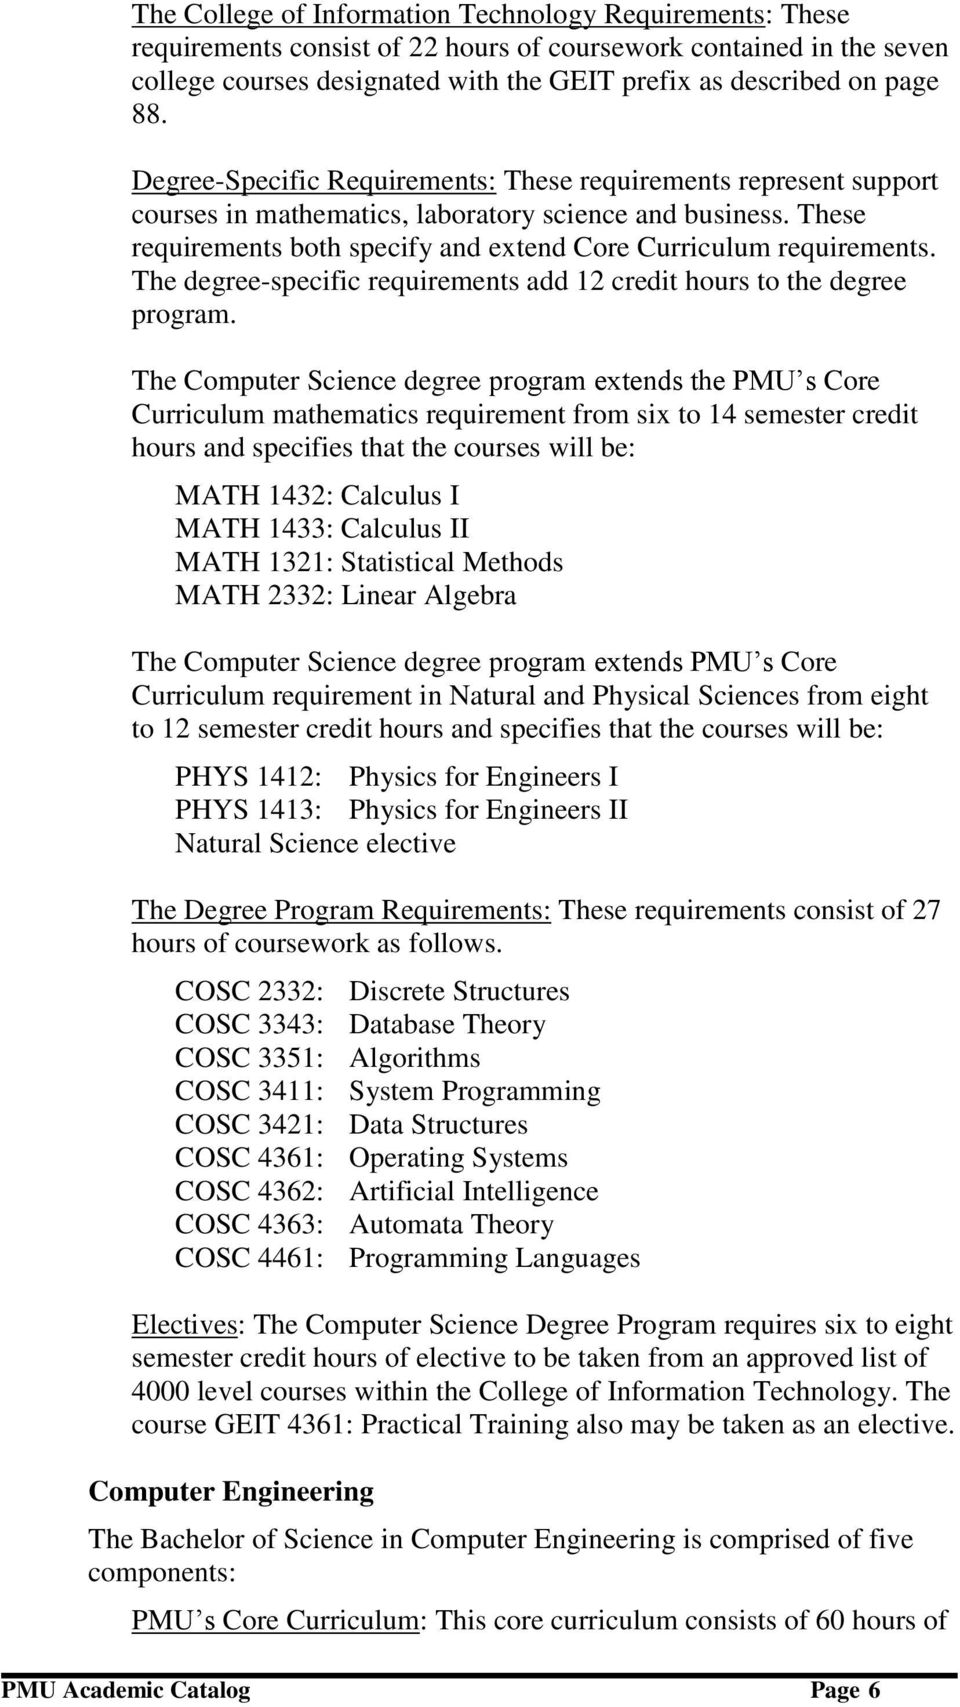 The degree-specific requirements add 12 credit hours to the degree program.